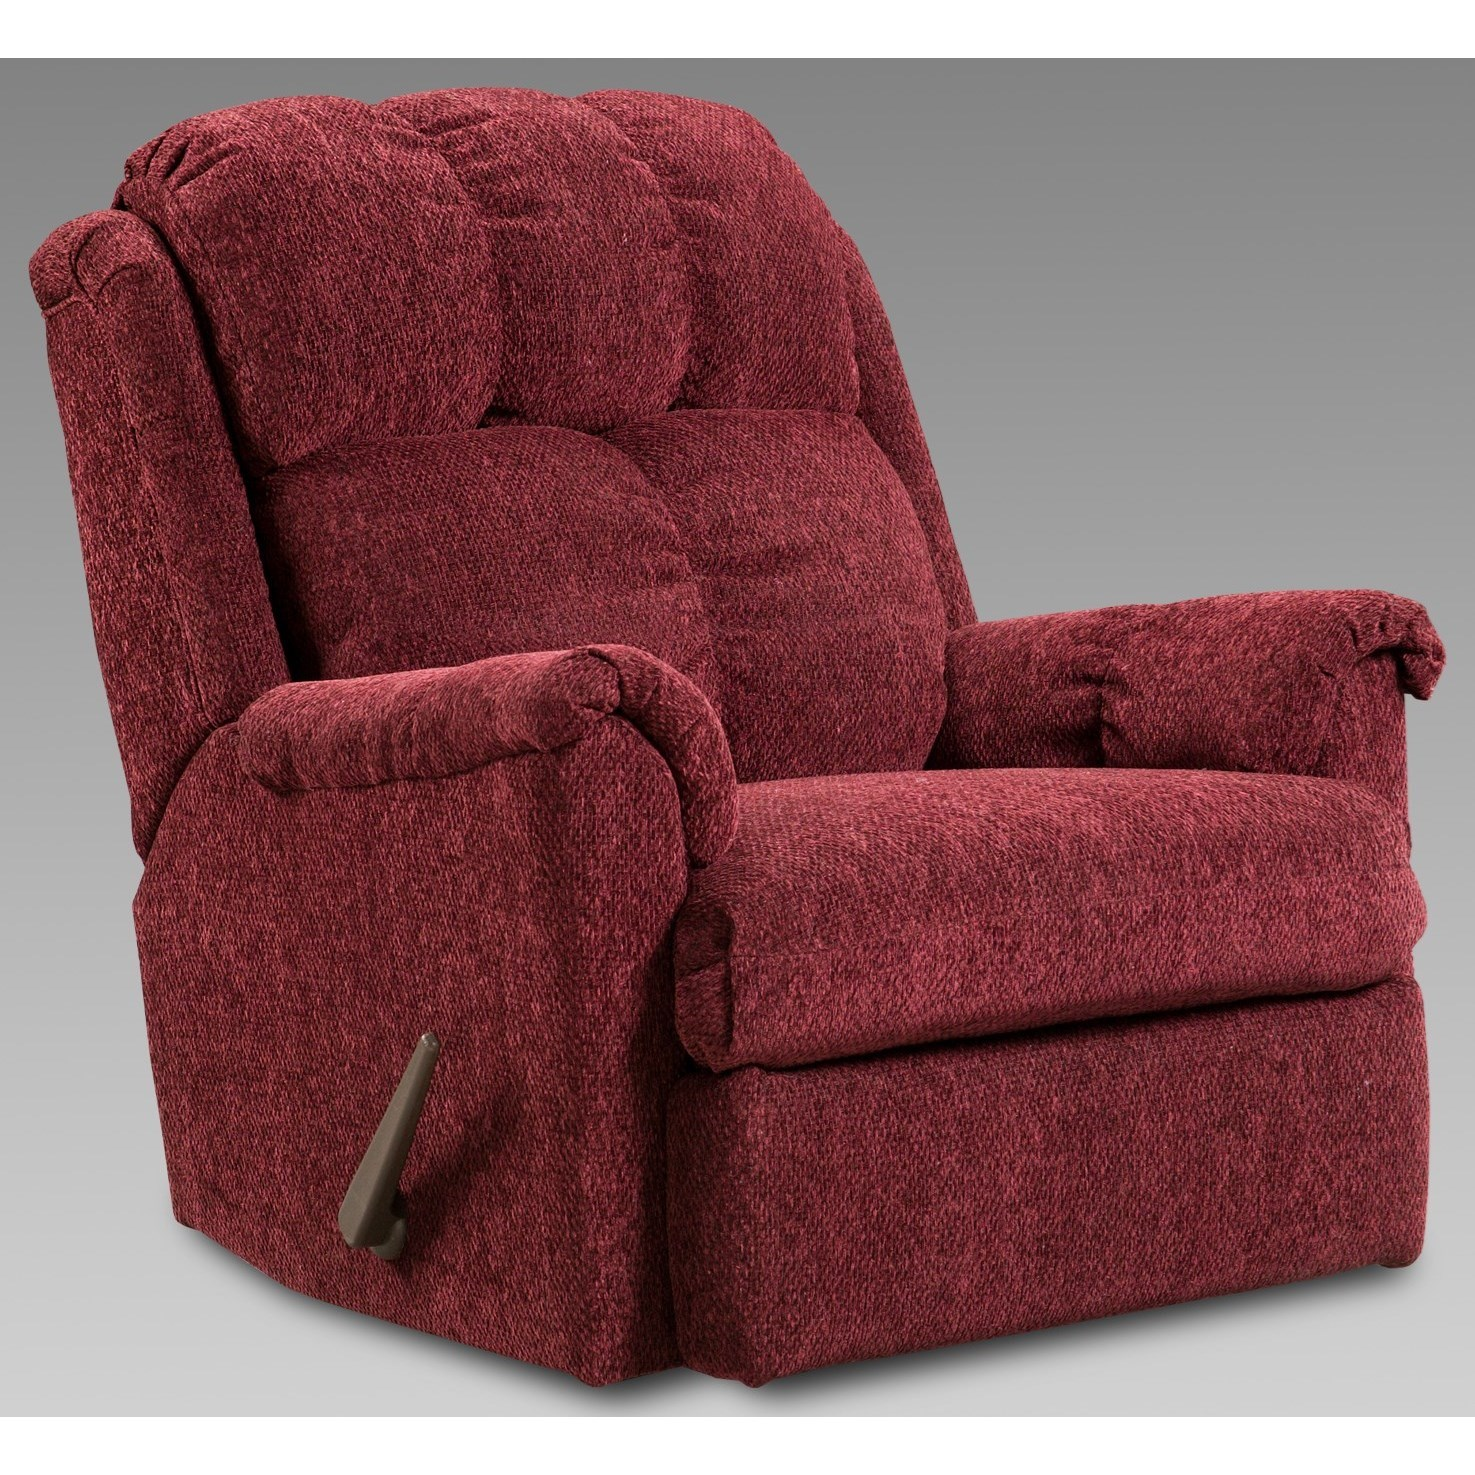 6150 Rocker Recliner by Affordable Furniture at Wilcox Furniture